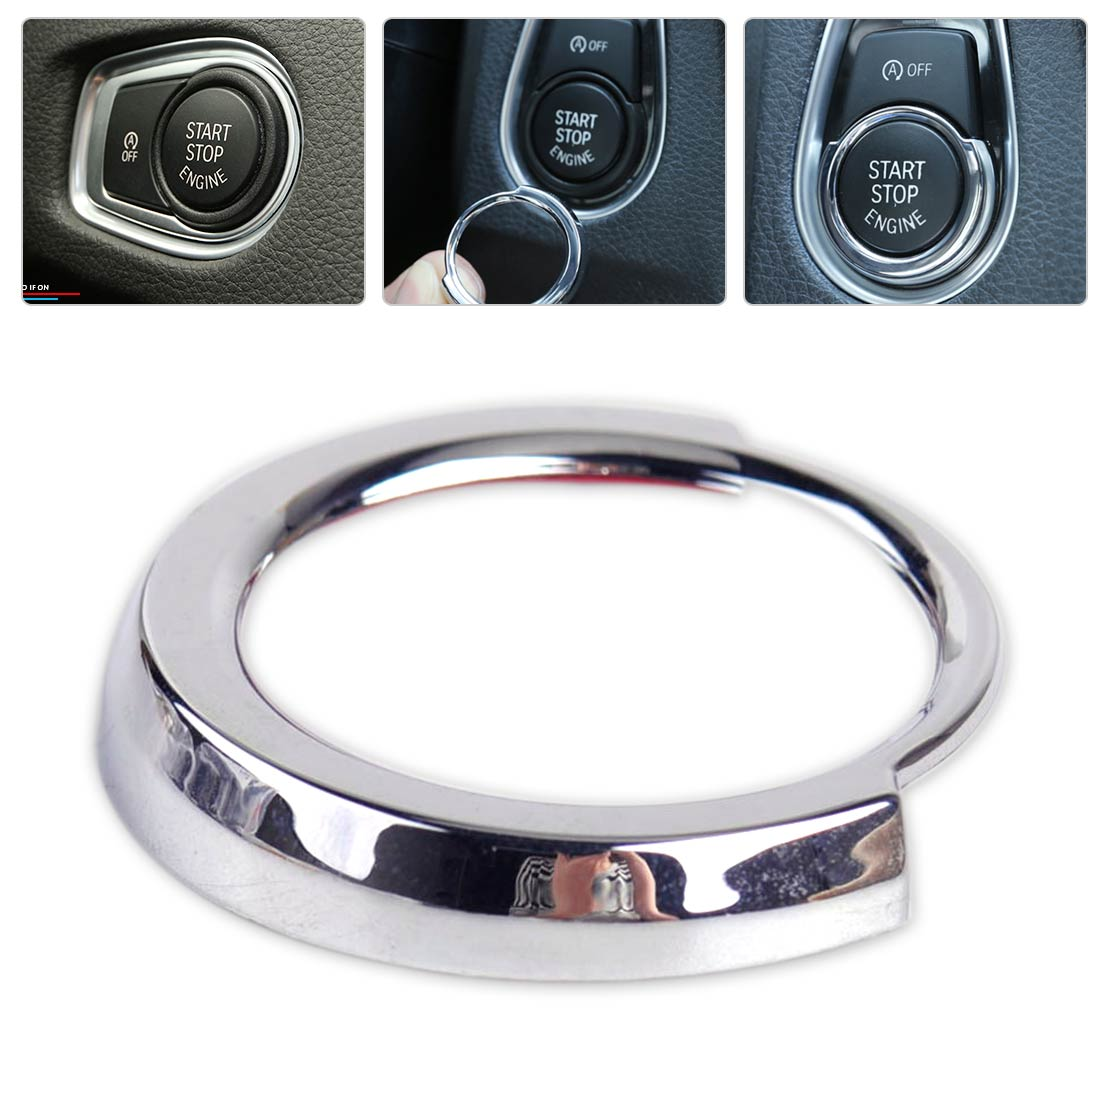 CITALL Chrome Engine Start Stop Button Switch Decorative Frame Cover Trim for <font><b>BMW</b></font> 1 3 Series F30 F20 316i 320i <font><b>116i</b></font> Car Styling image